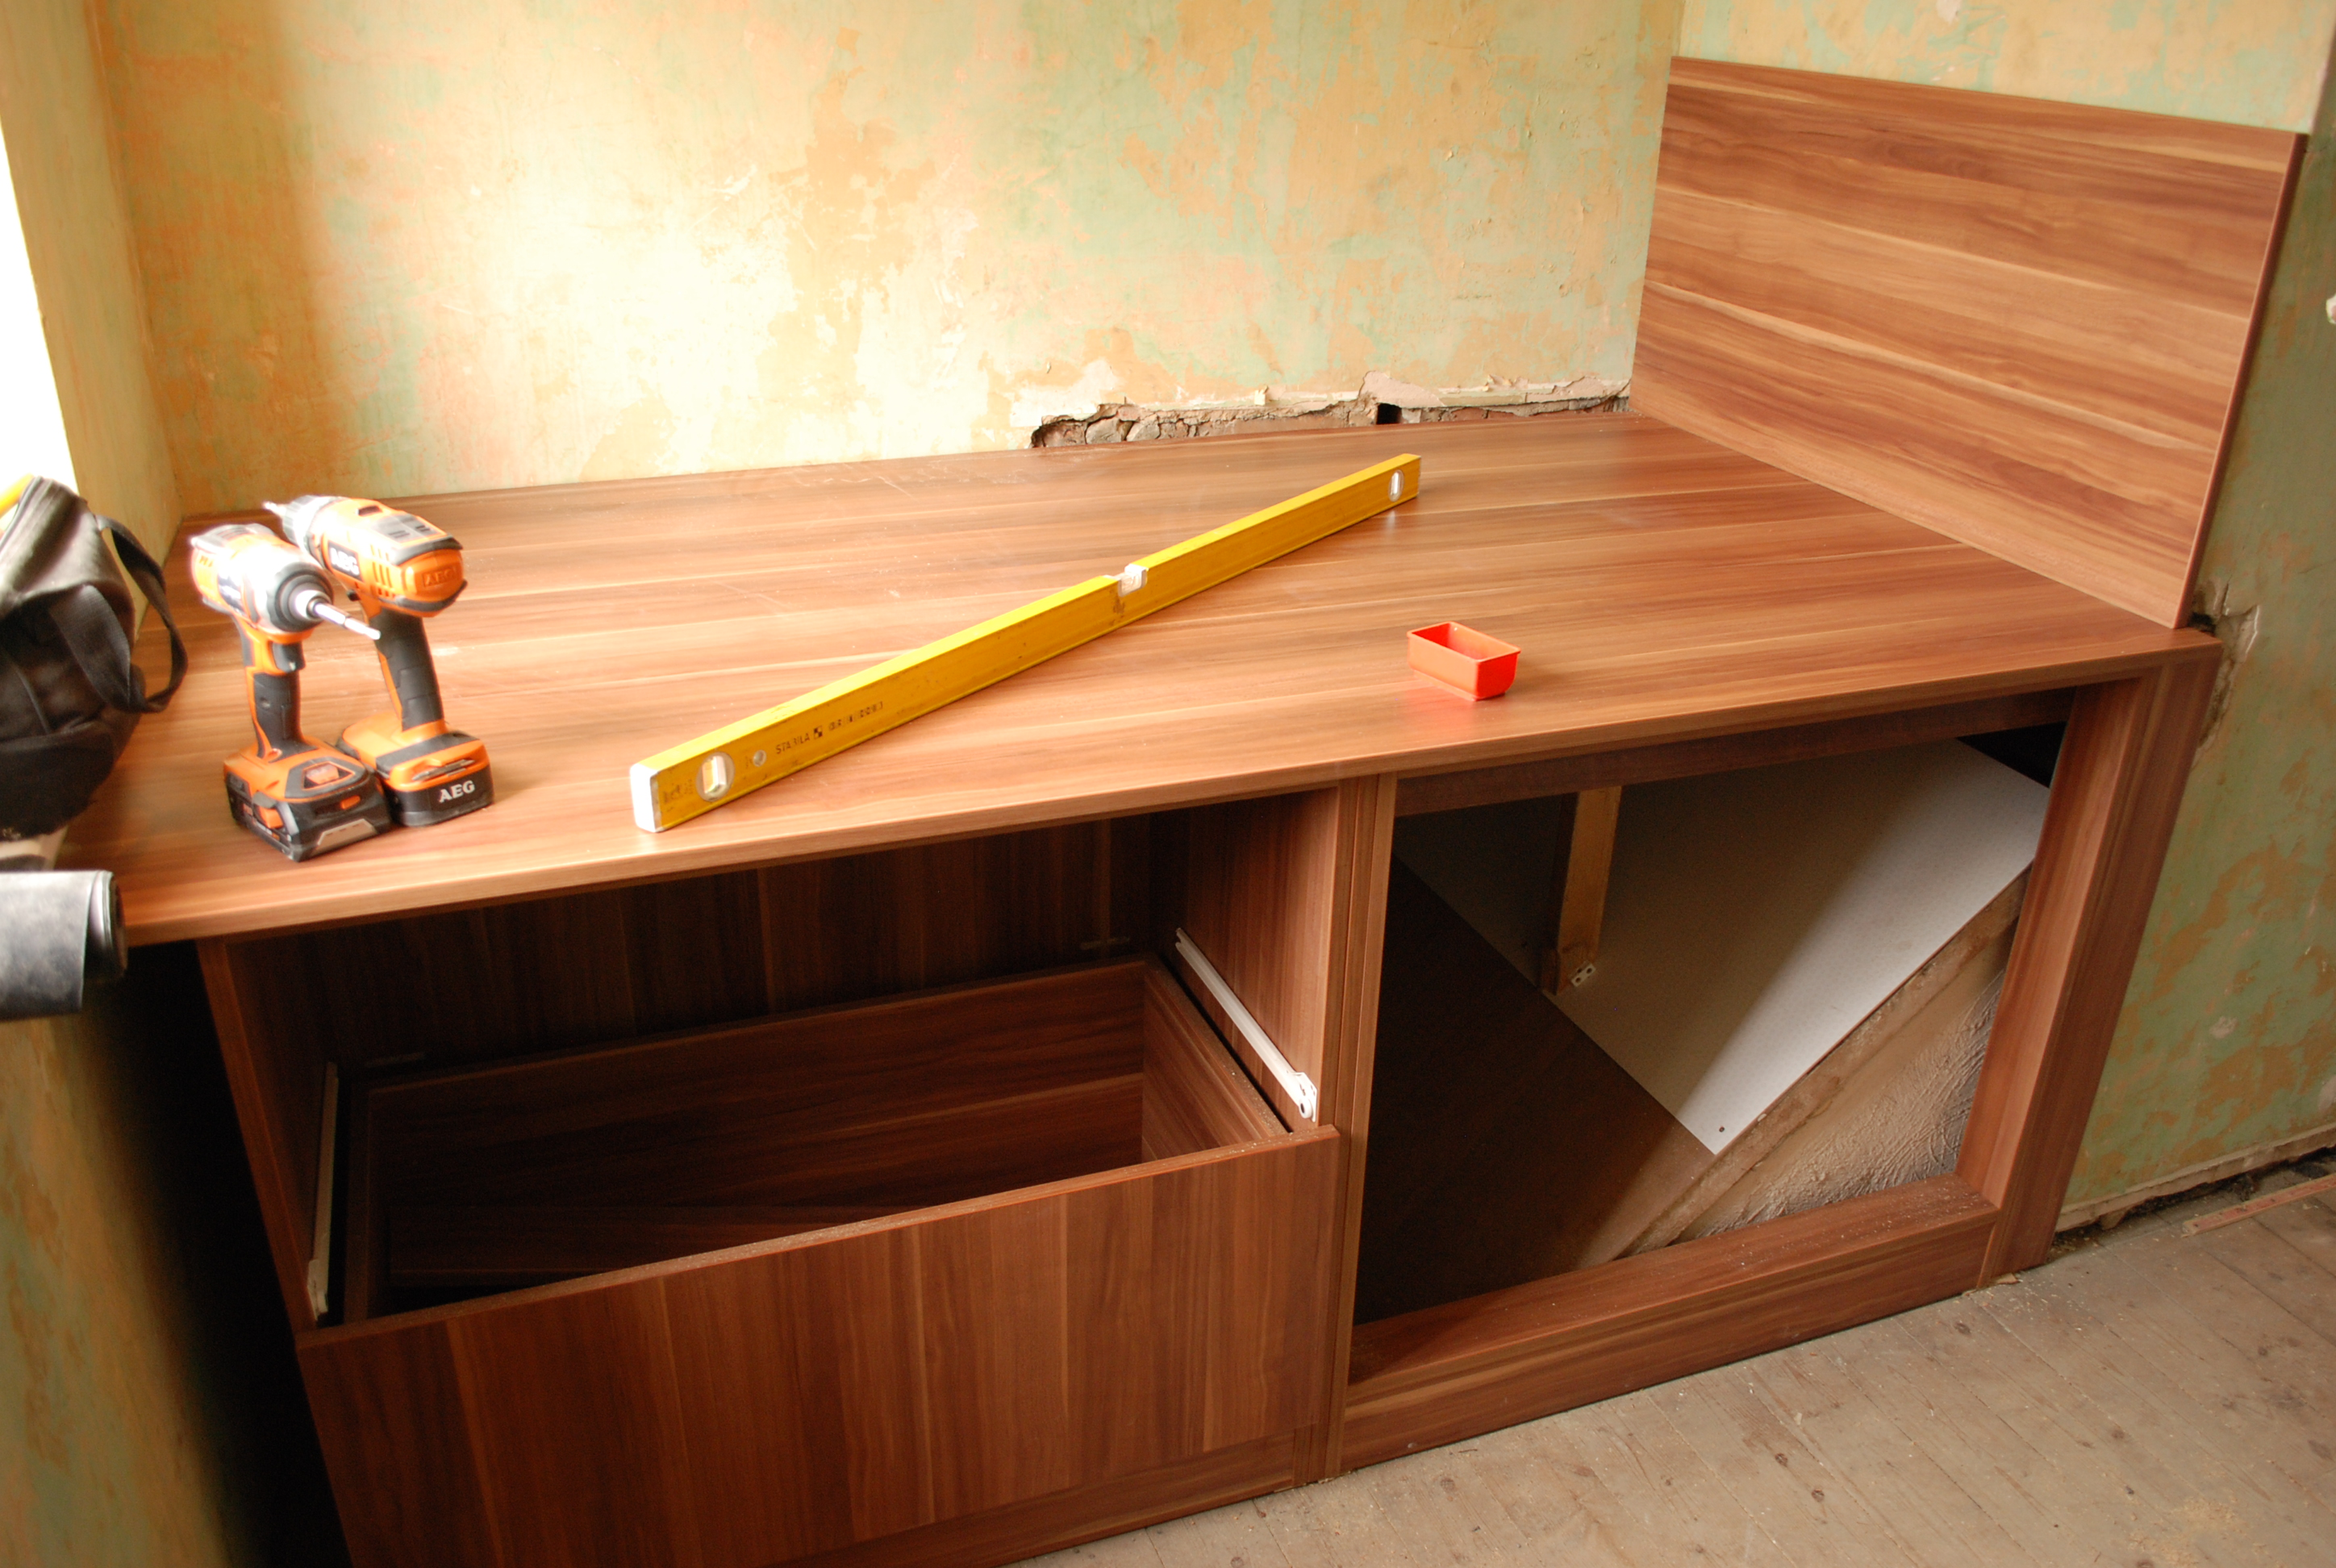 Cabin Bed With Drawers